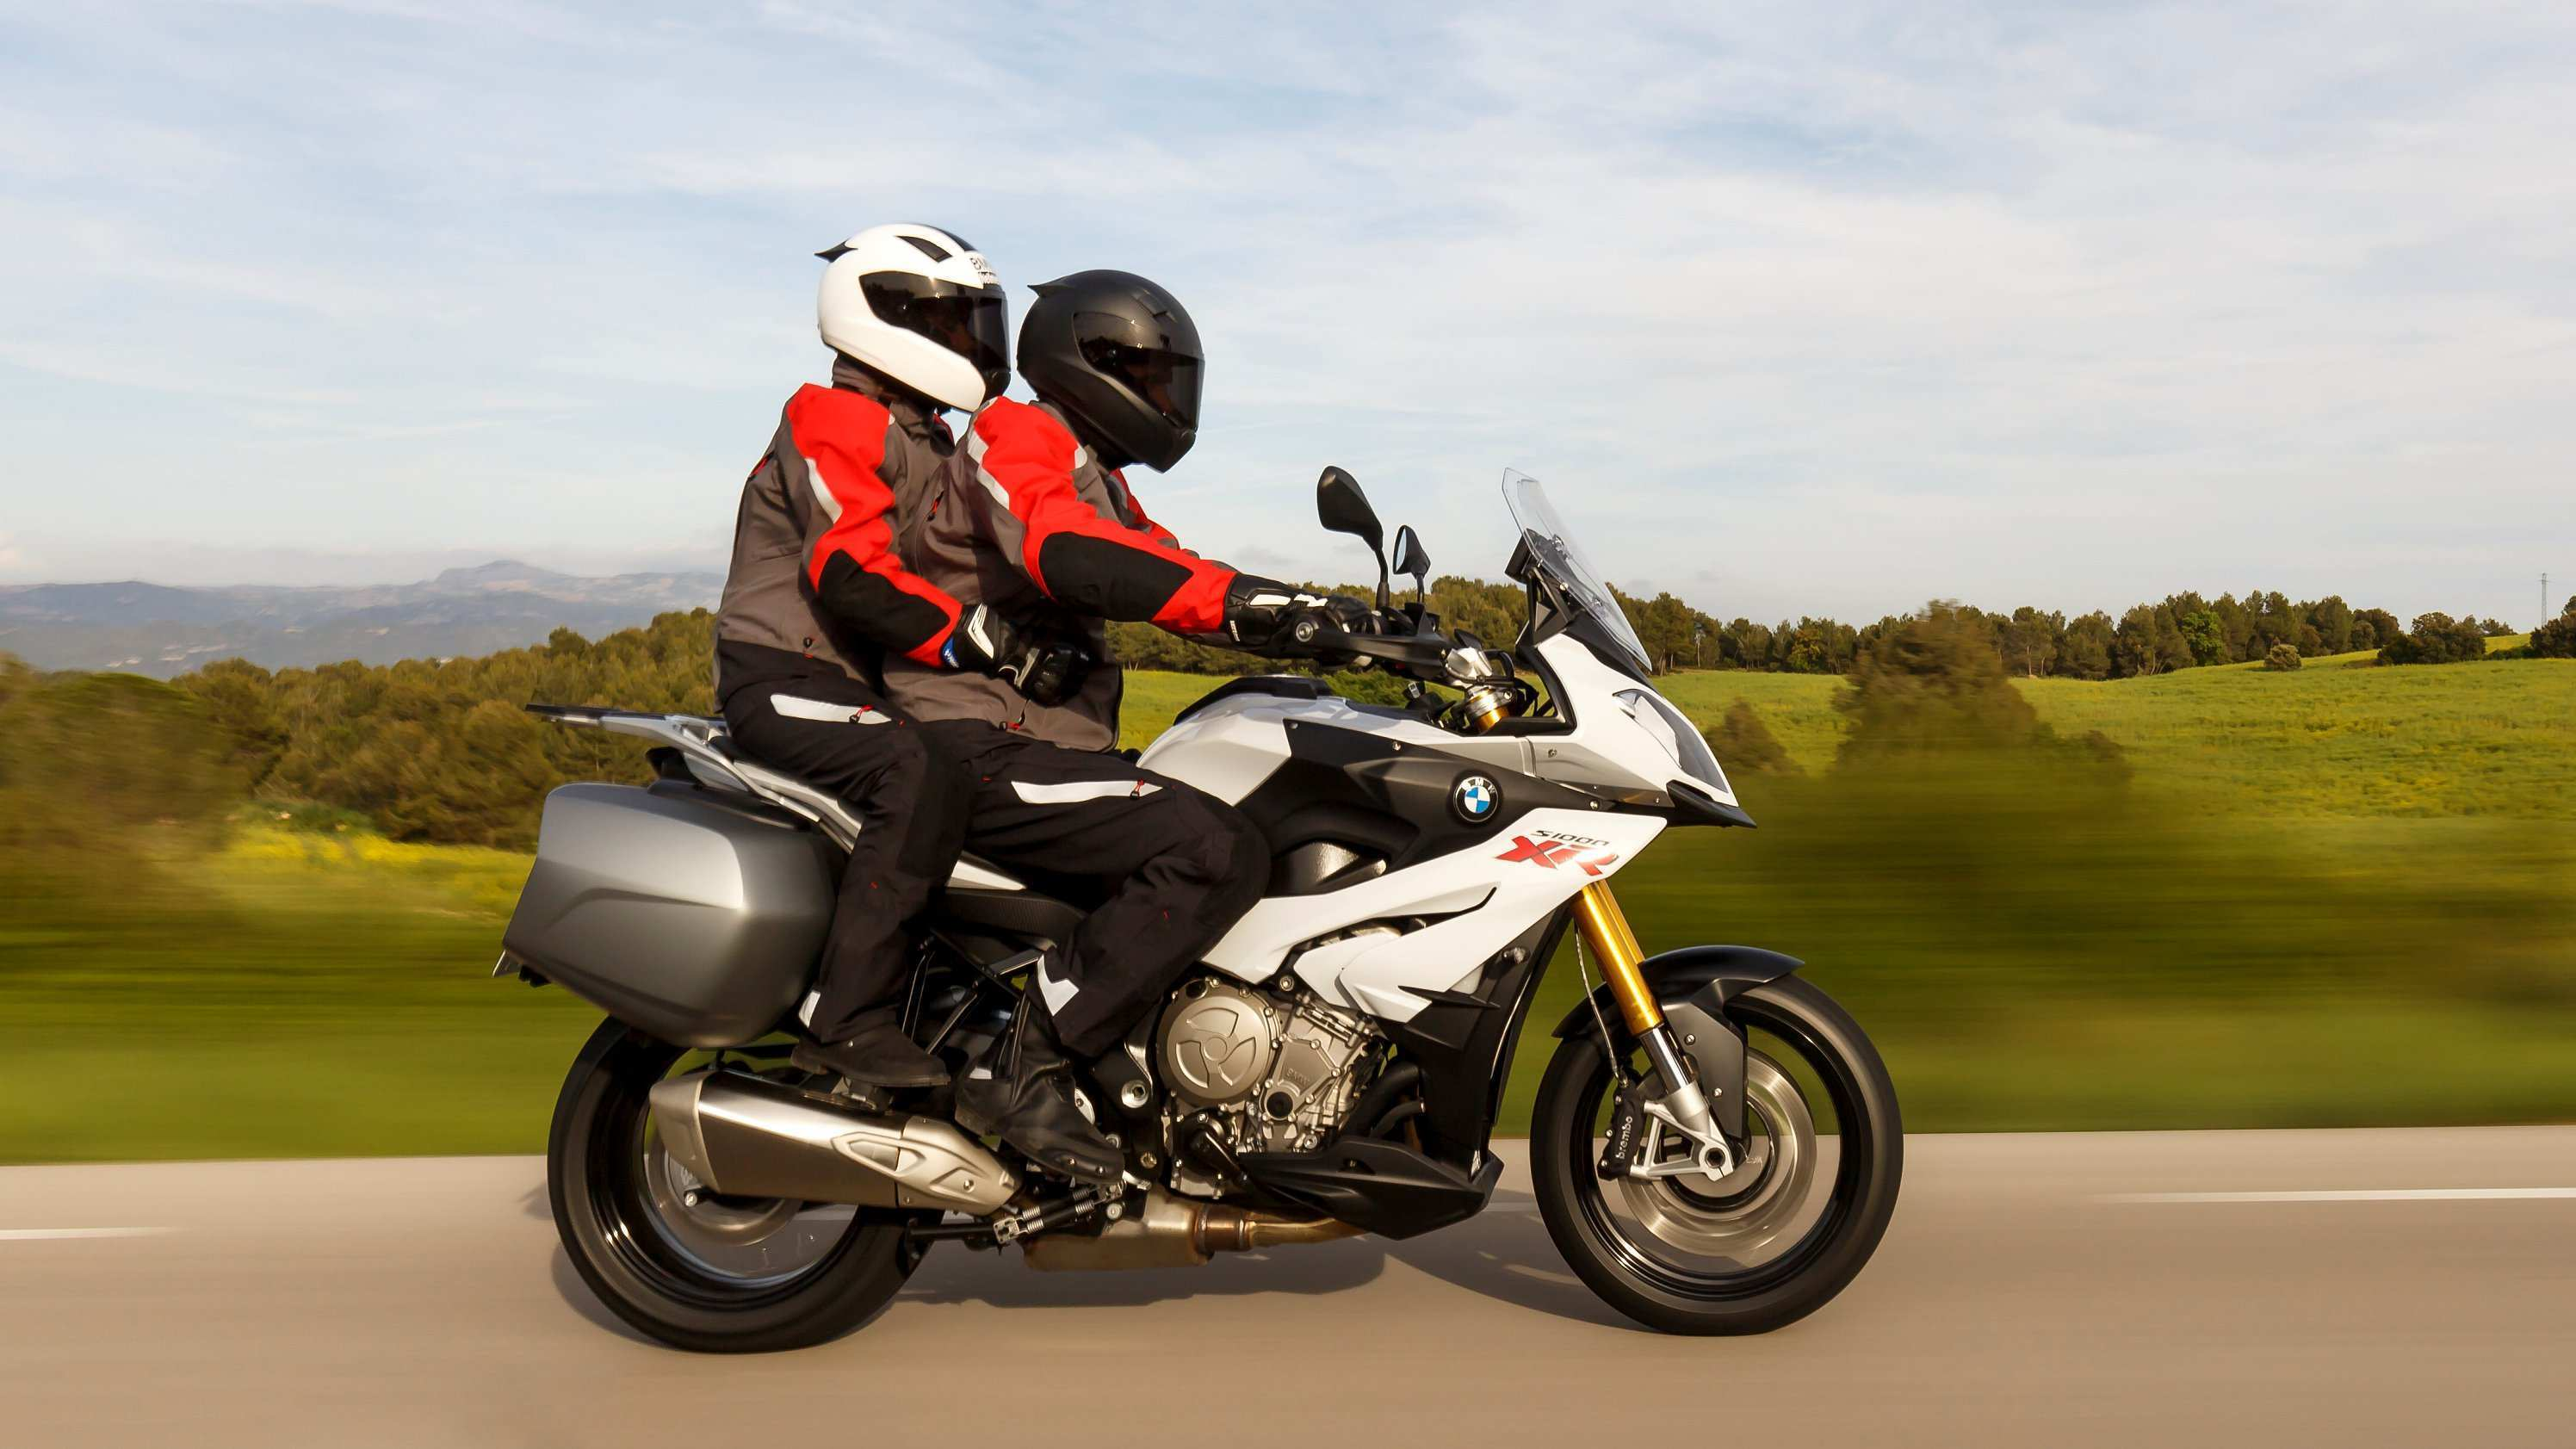 48 The Best Bmw S1000Xr 2019 Release Date Price And Review Model by Best Bmw S1000Xr 2019 Release Date Price And Review